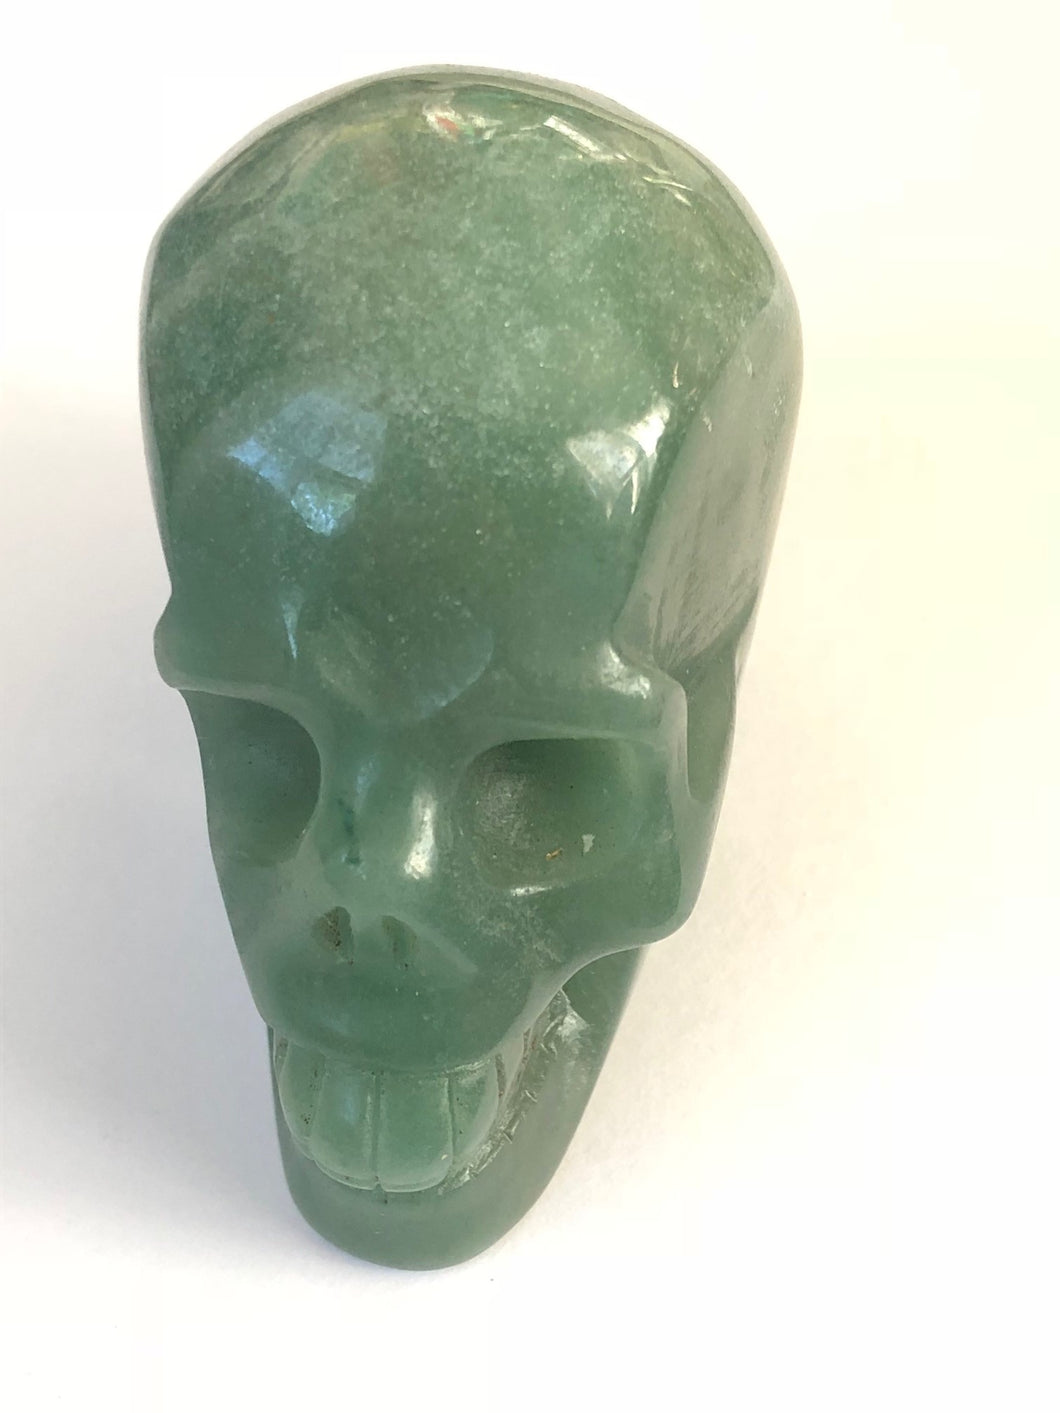 Green Jade Aventurine Skull Carvings Reiki Healing, Carvings, - Goddess Stone